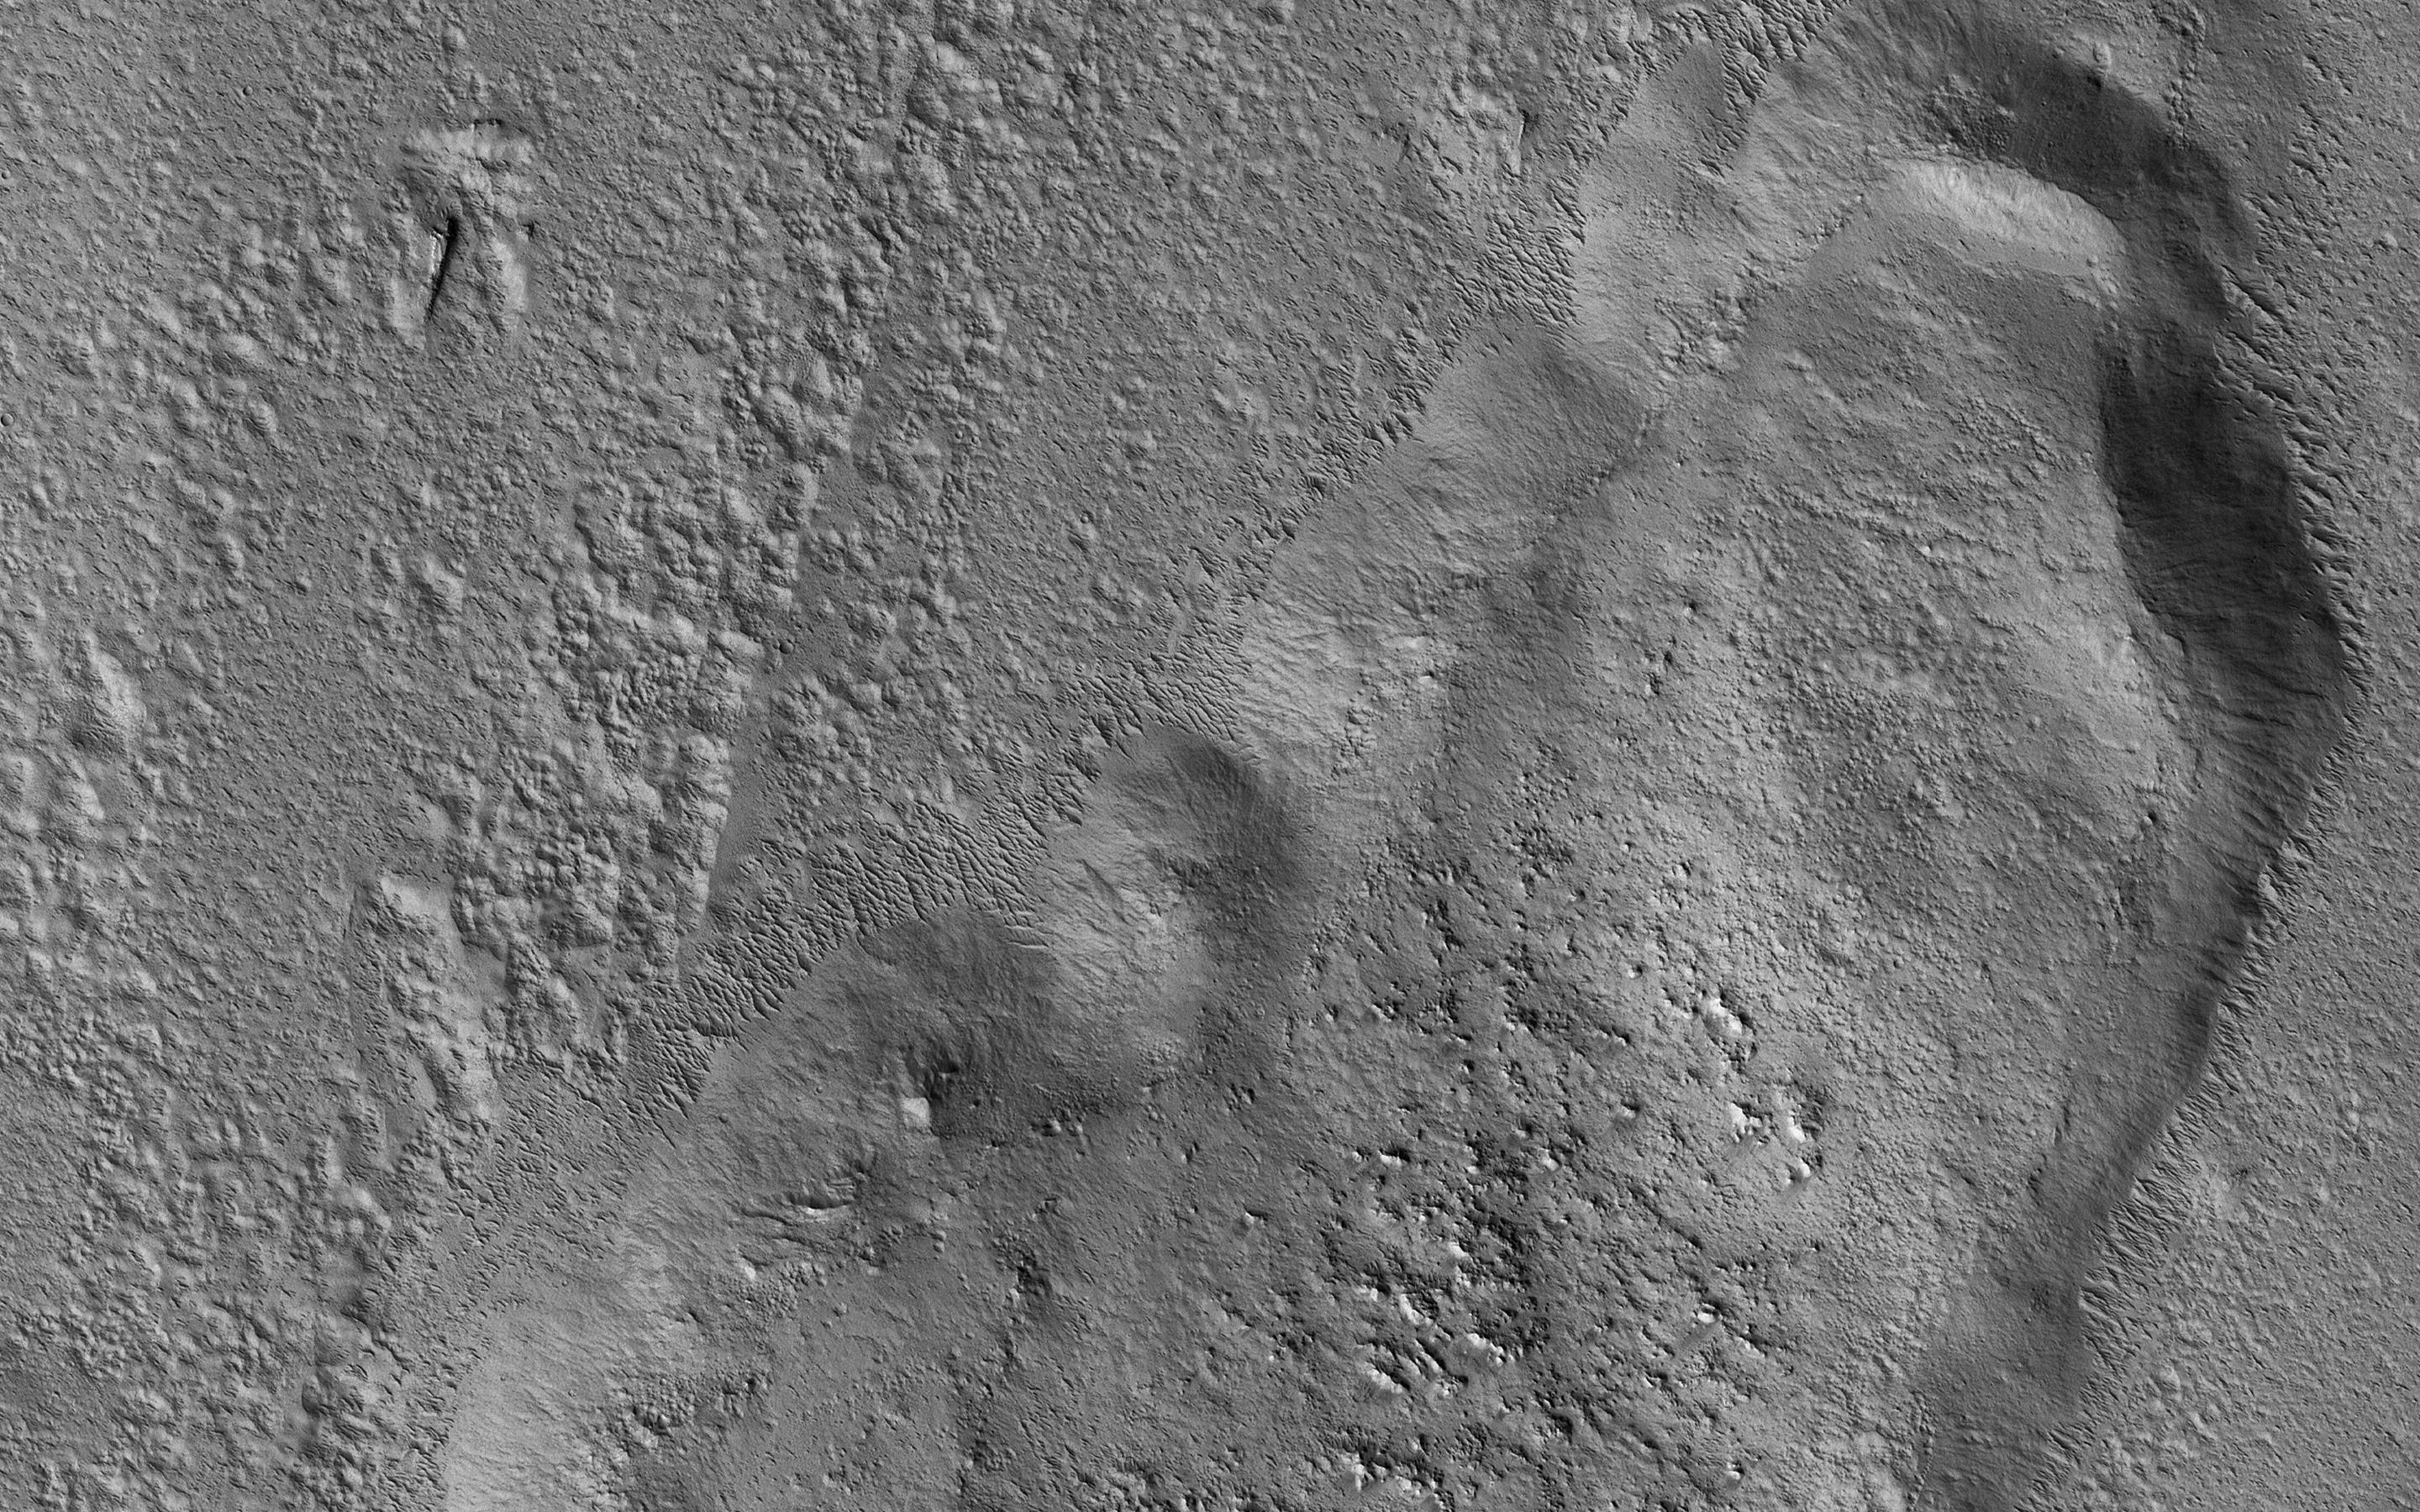 This image acquired on September 24, 2018 by NASAs Mars Reconnaissance Orbiter, shows a huge tongue-like form, which looks a like a mudflow with boulders on its surface.